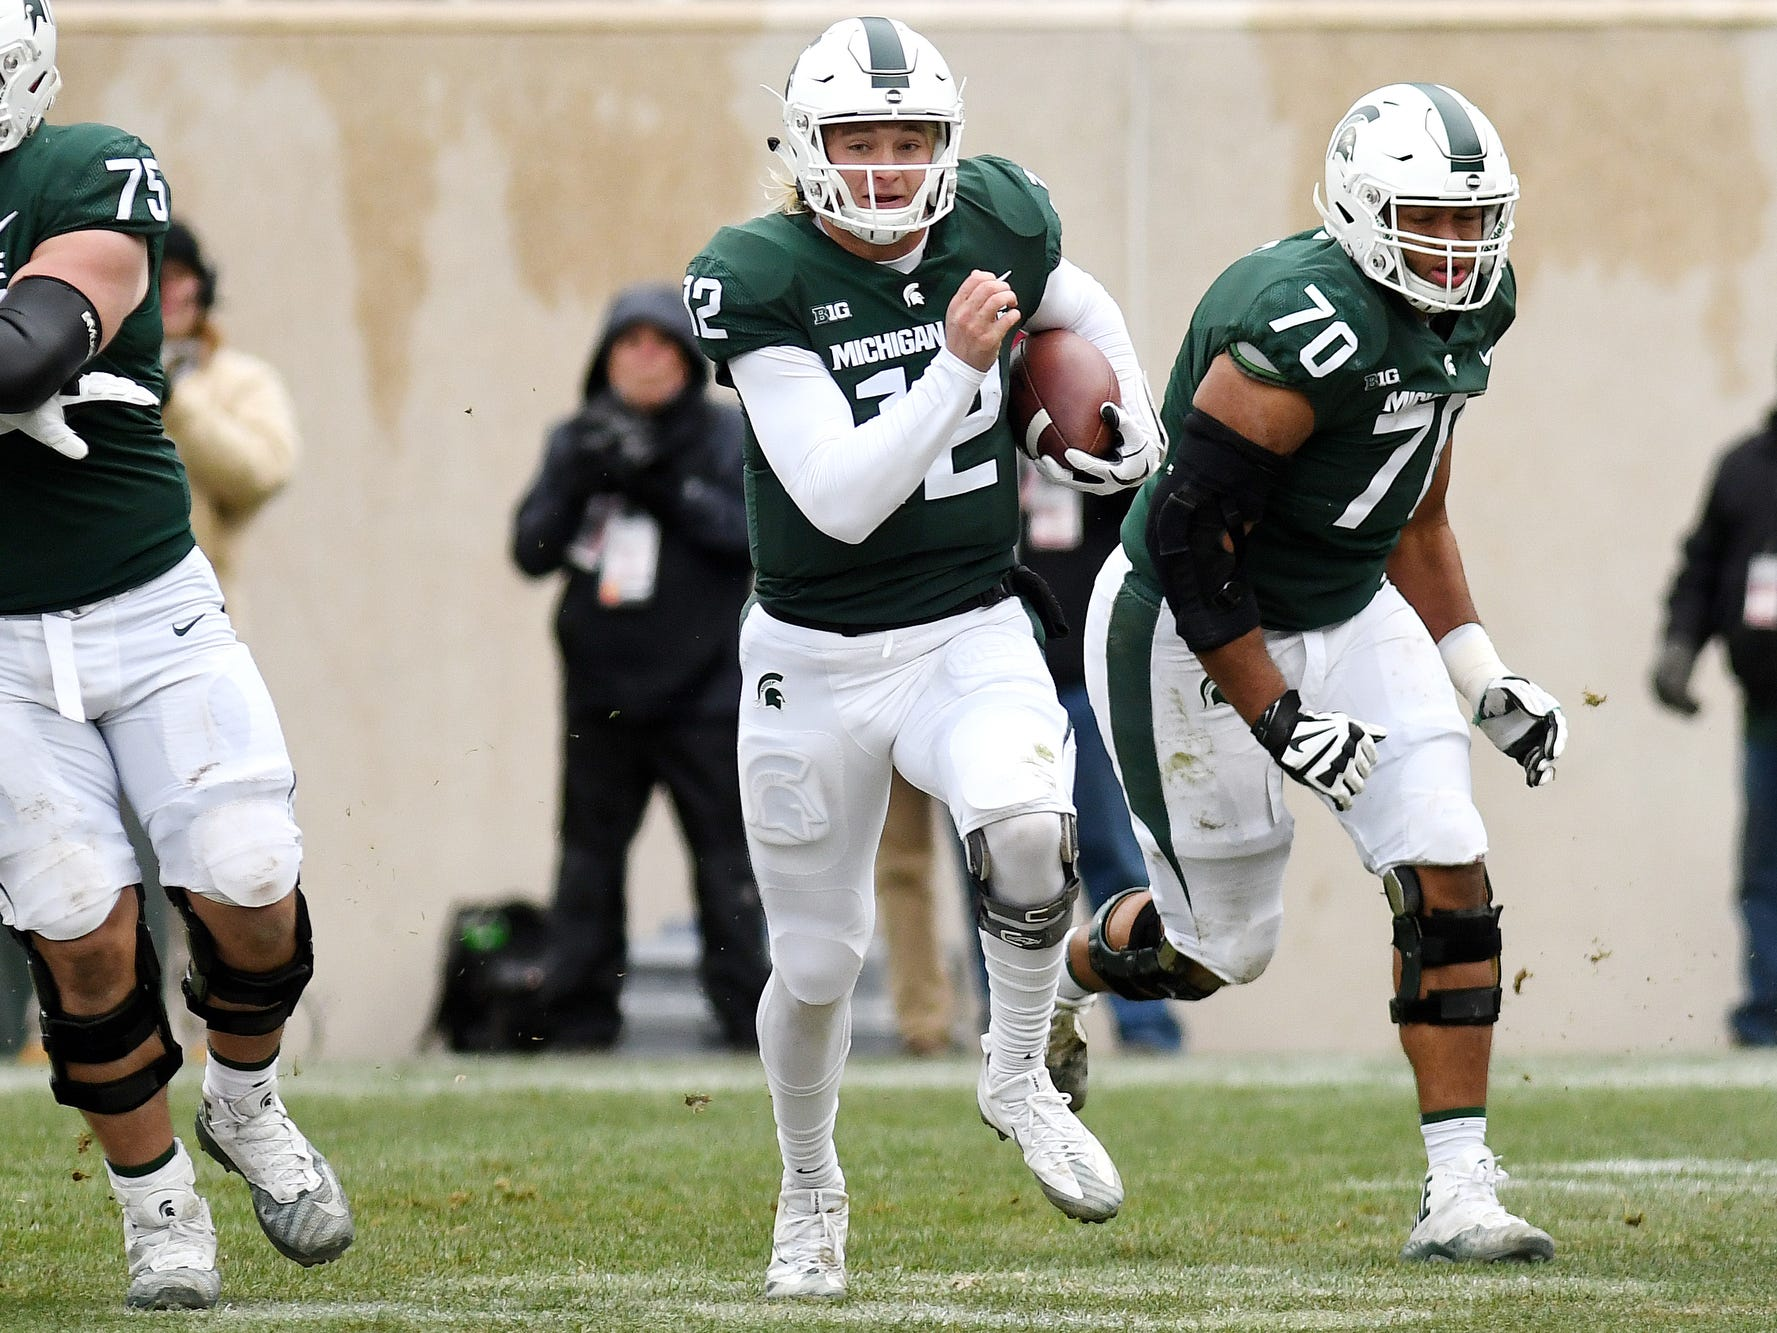 Michigan State's Rocky Lombardi runs for a first down during the third quarter on Saturday, Nov. 10, 2018, in East Lansing.